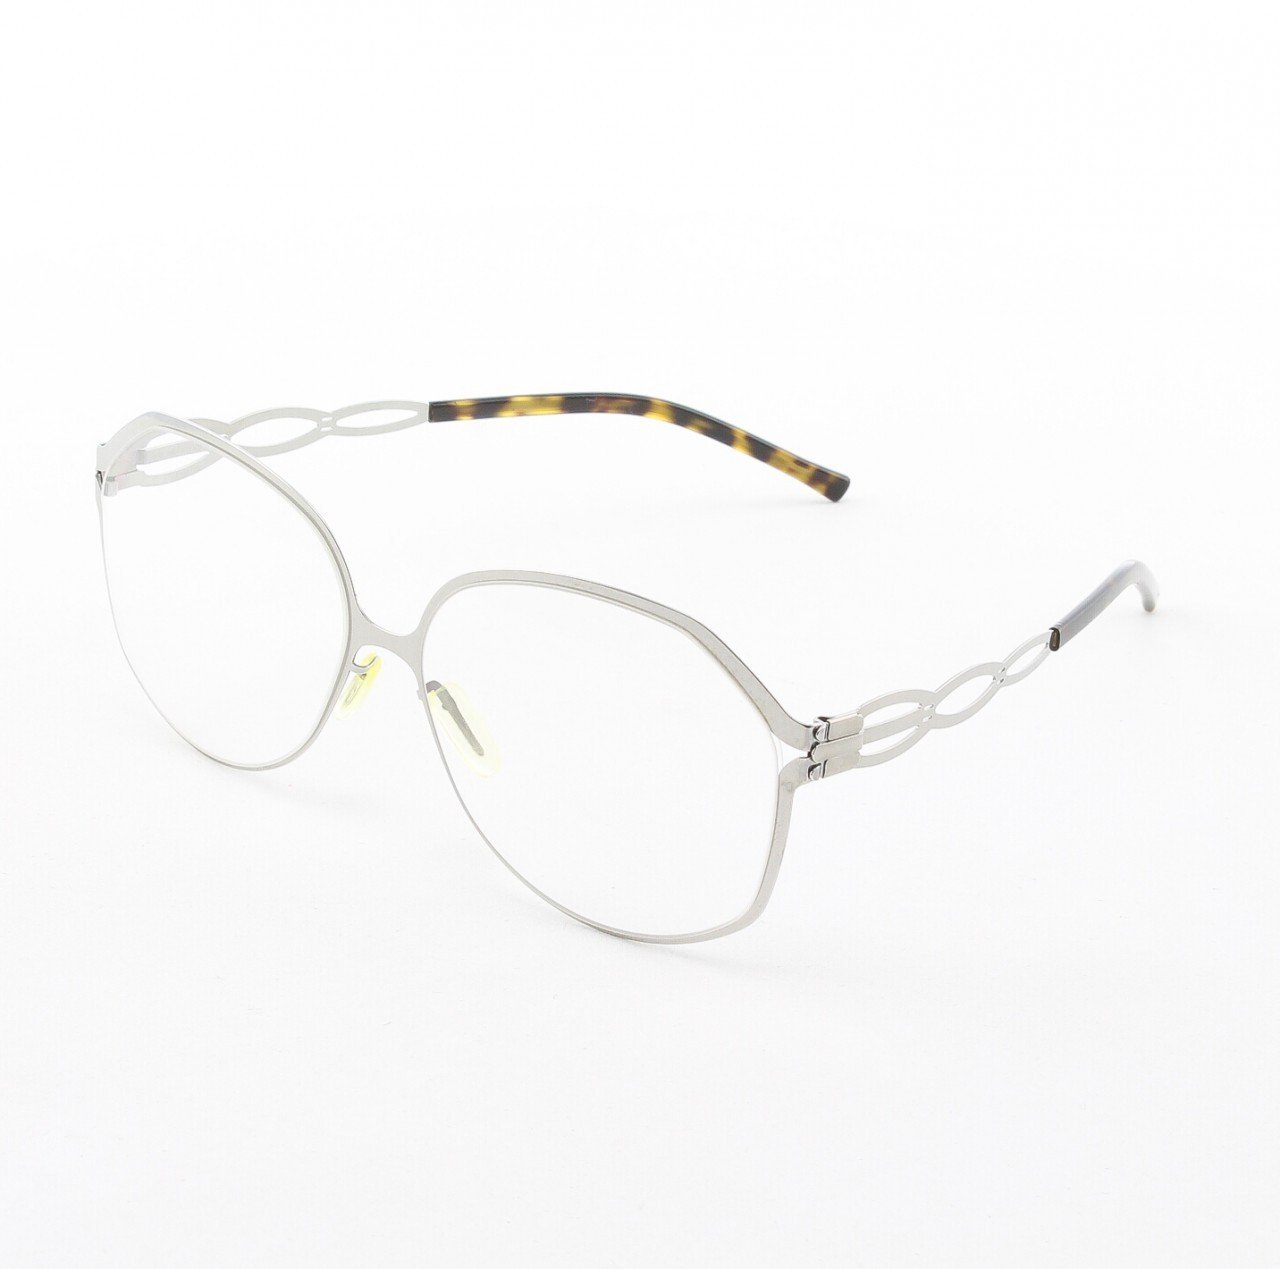 ic! Berlin Dimanche Eyeglasses Col. Chrome / Tortoise with Clear Lenses